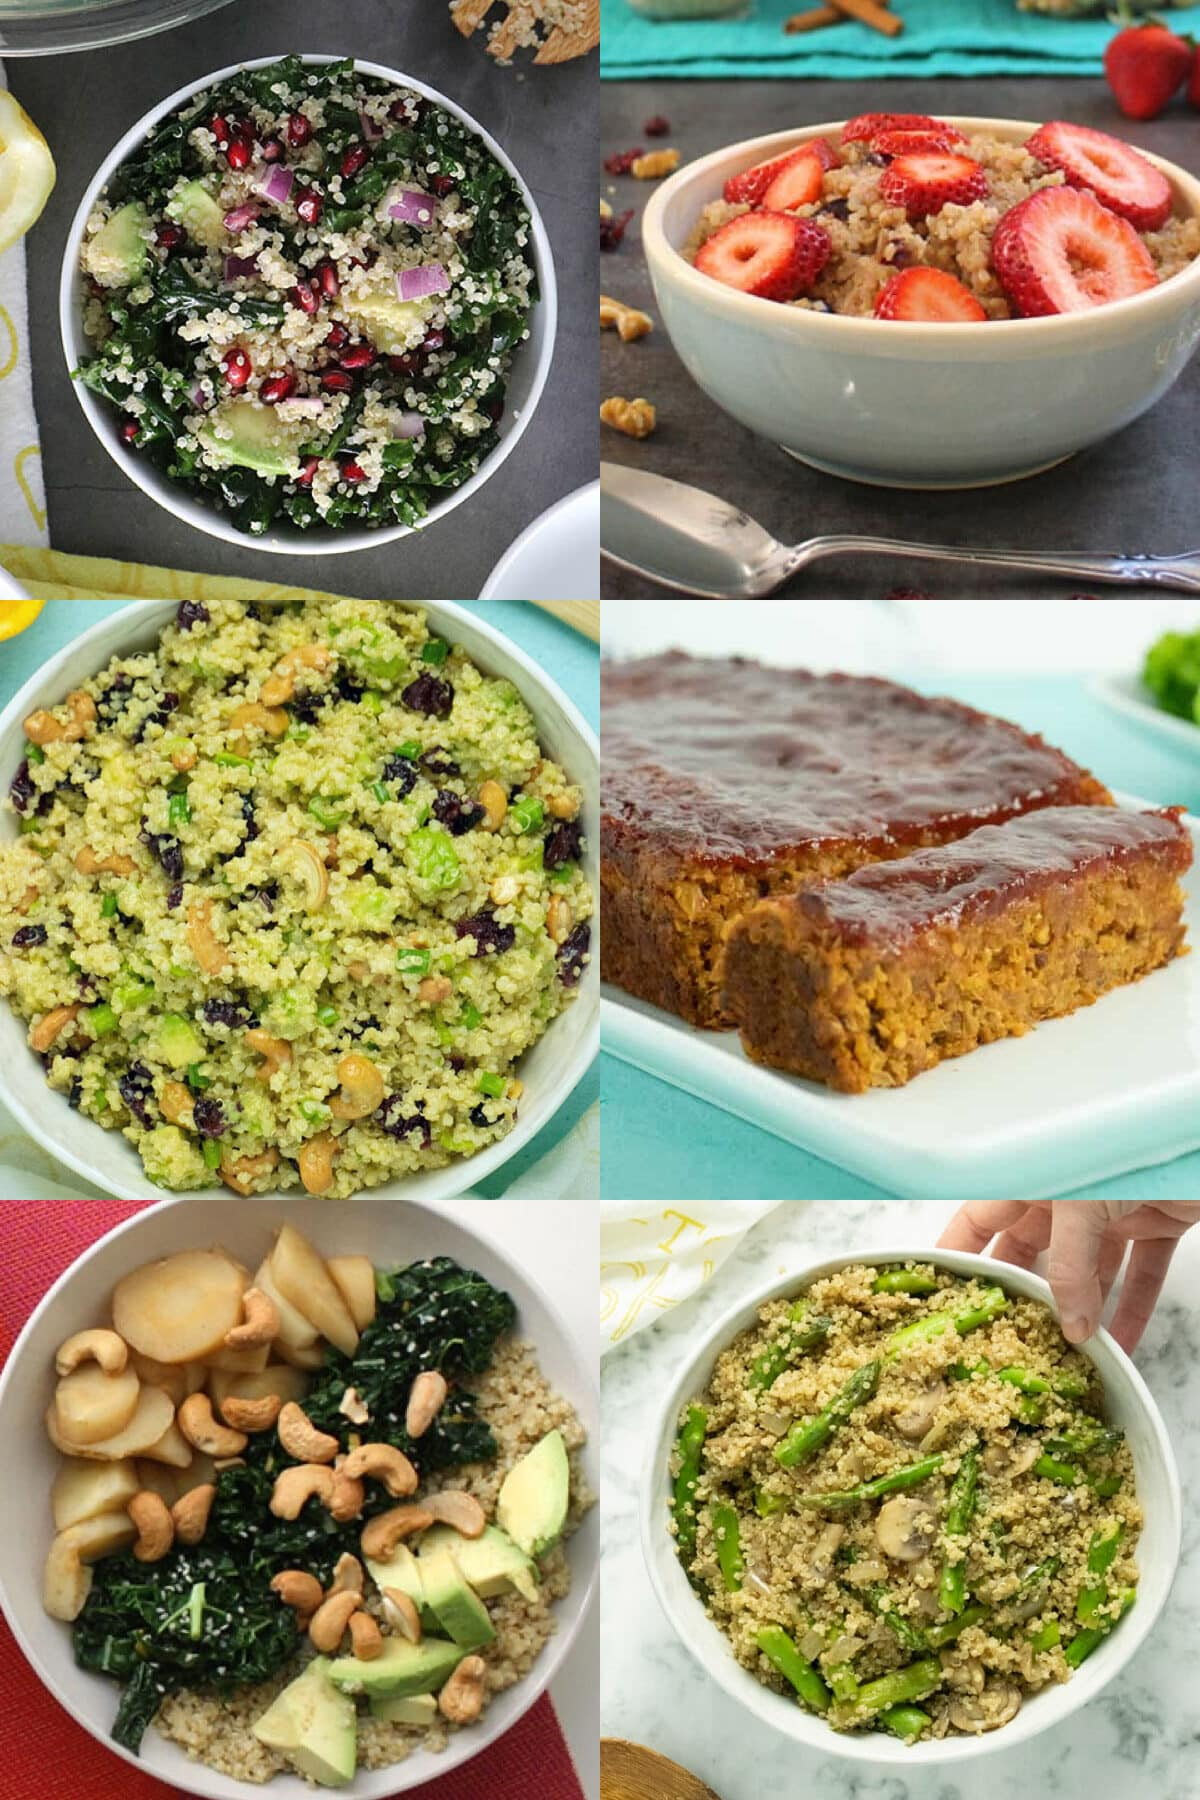 image collage of quinoa dishes: superfood salad, breakfast bowl, cranberry salad, quinoa loaf, quinoa bowl, and a pilaf